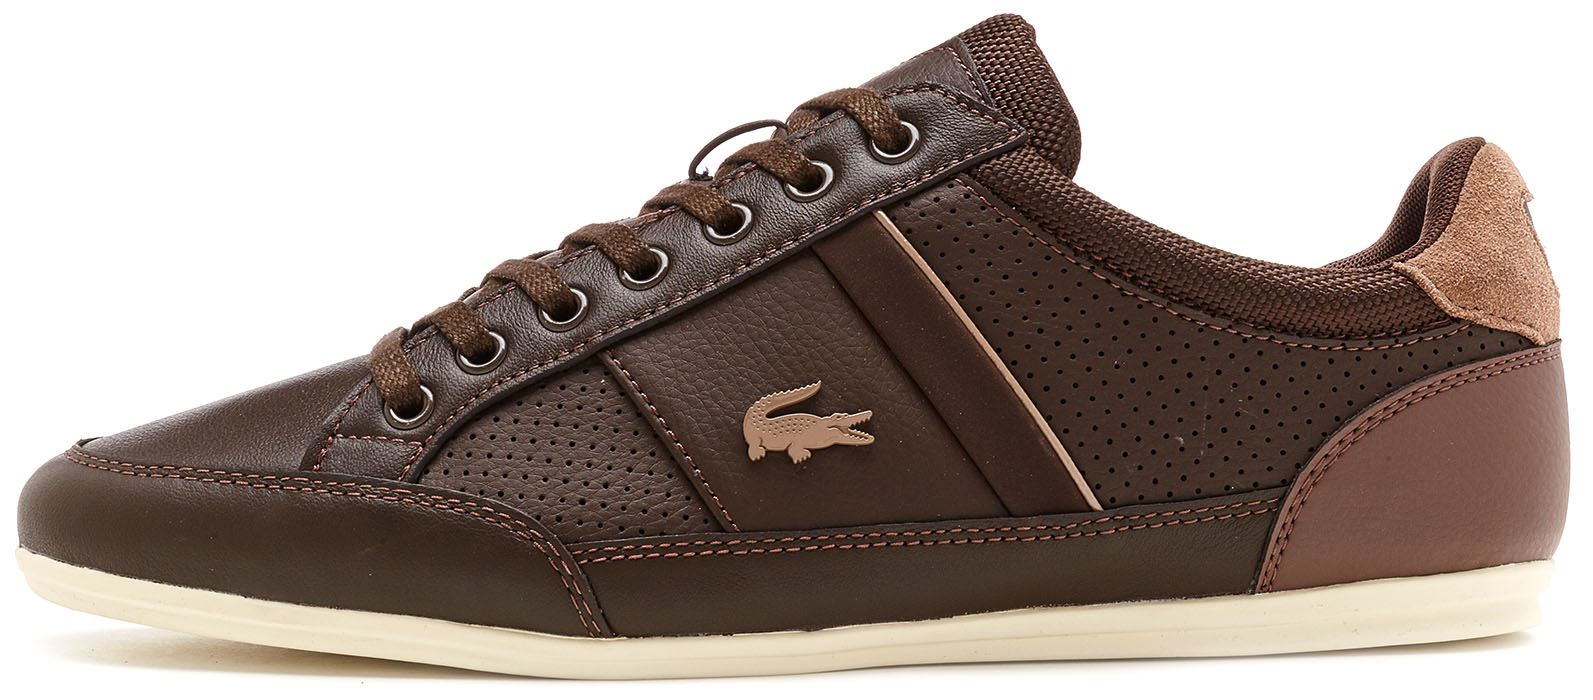 Lacoste Shoes Store Philippines